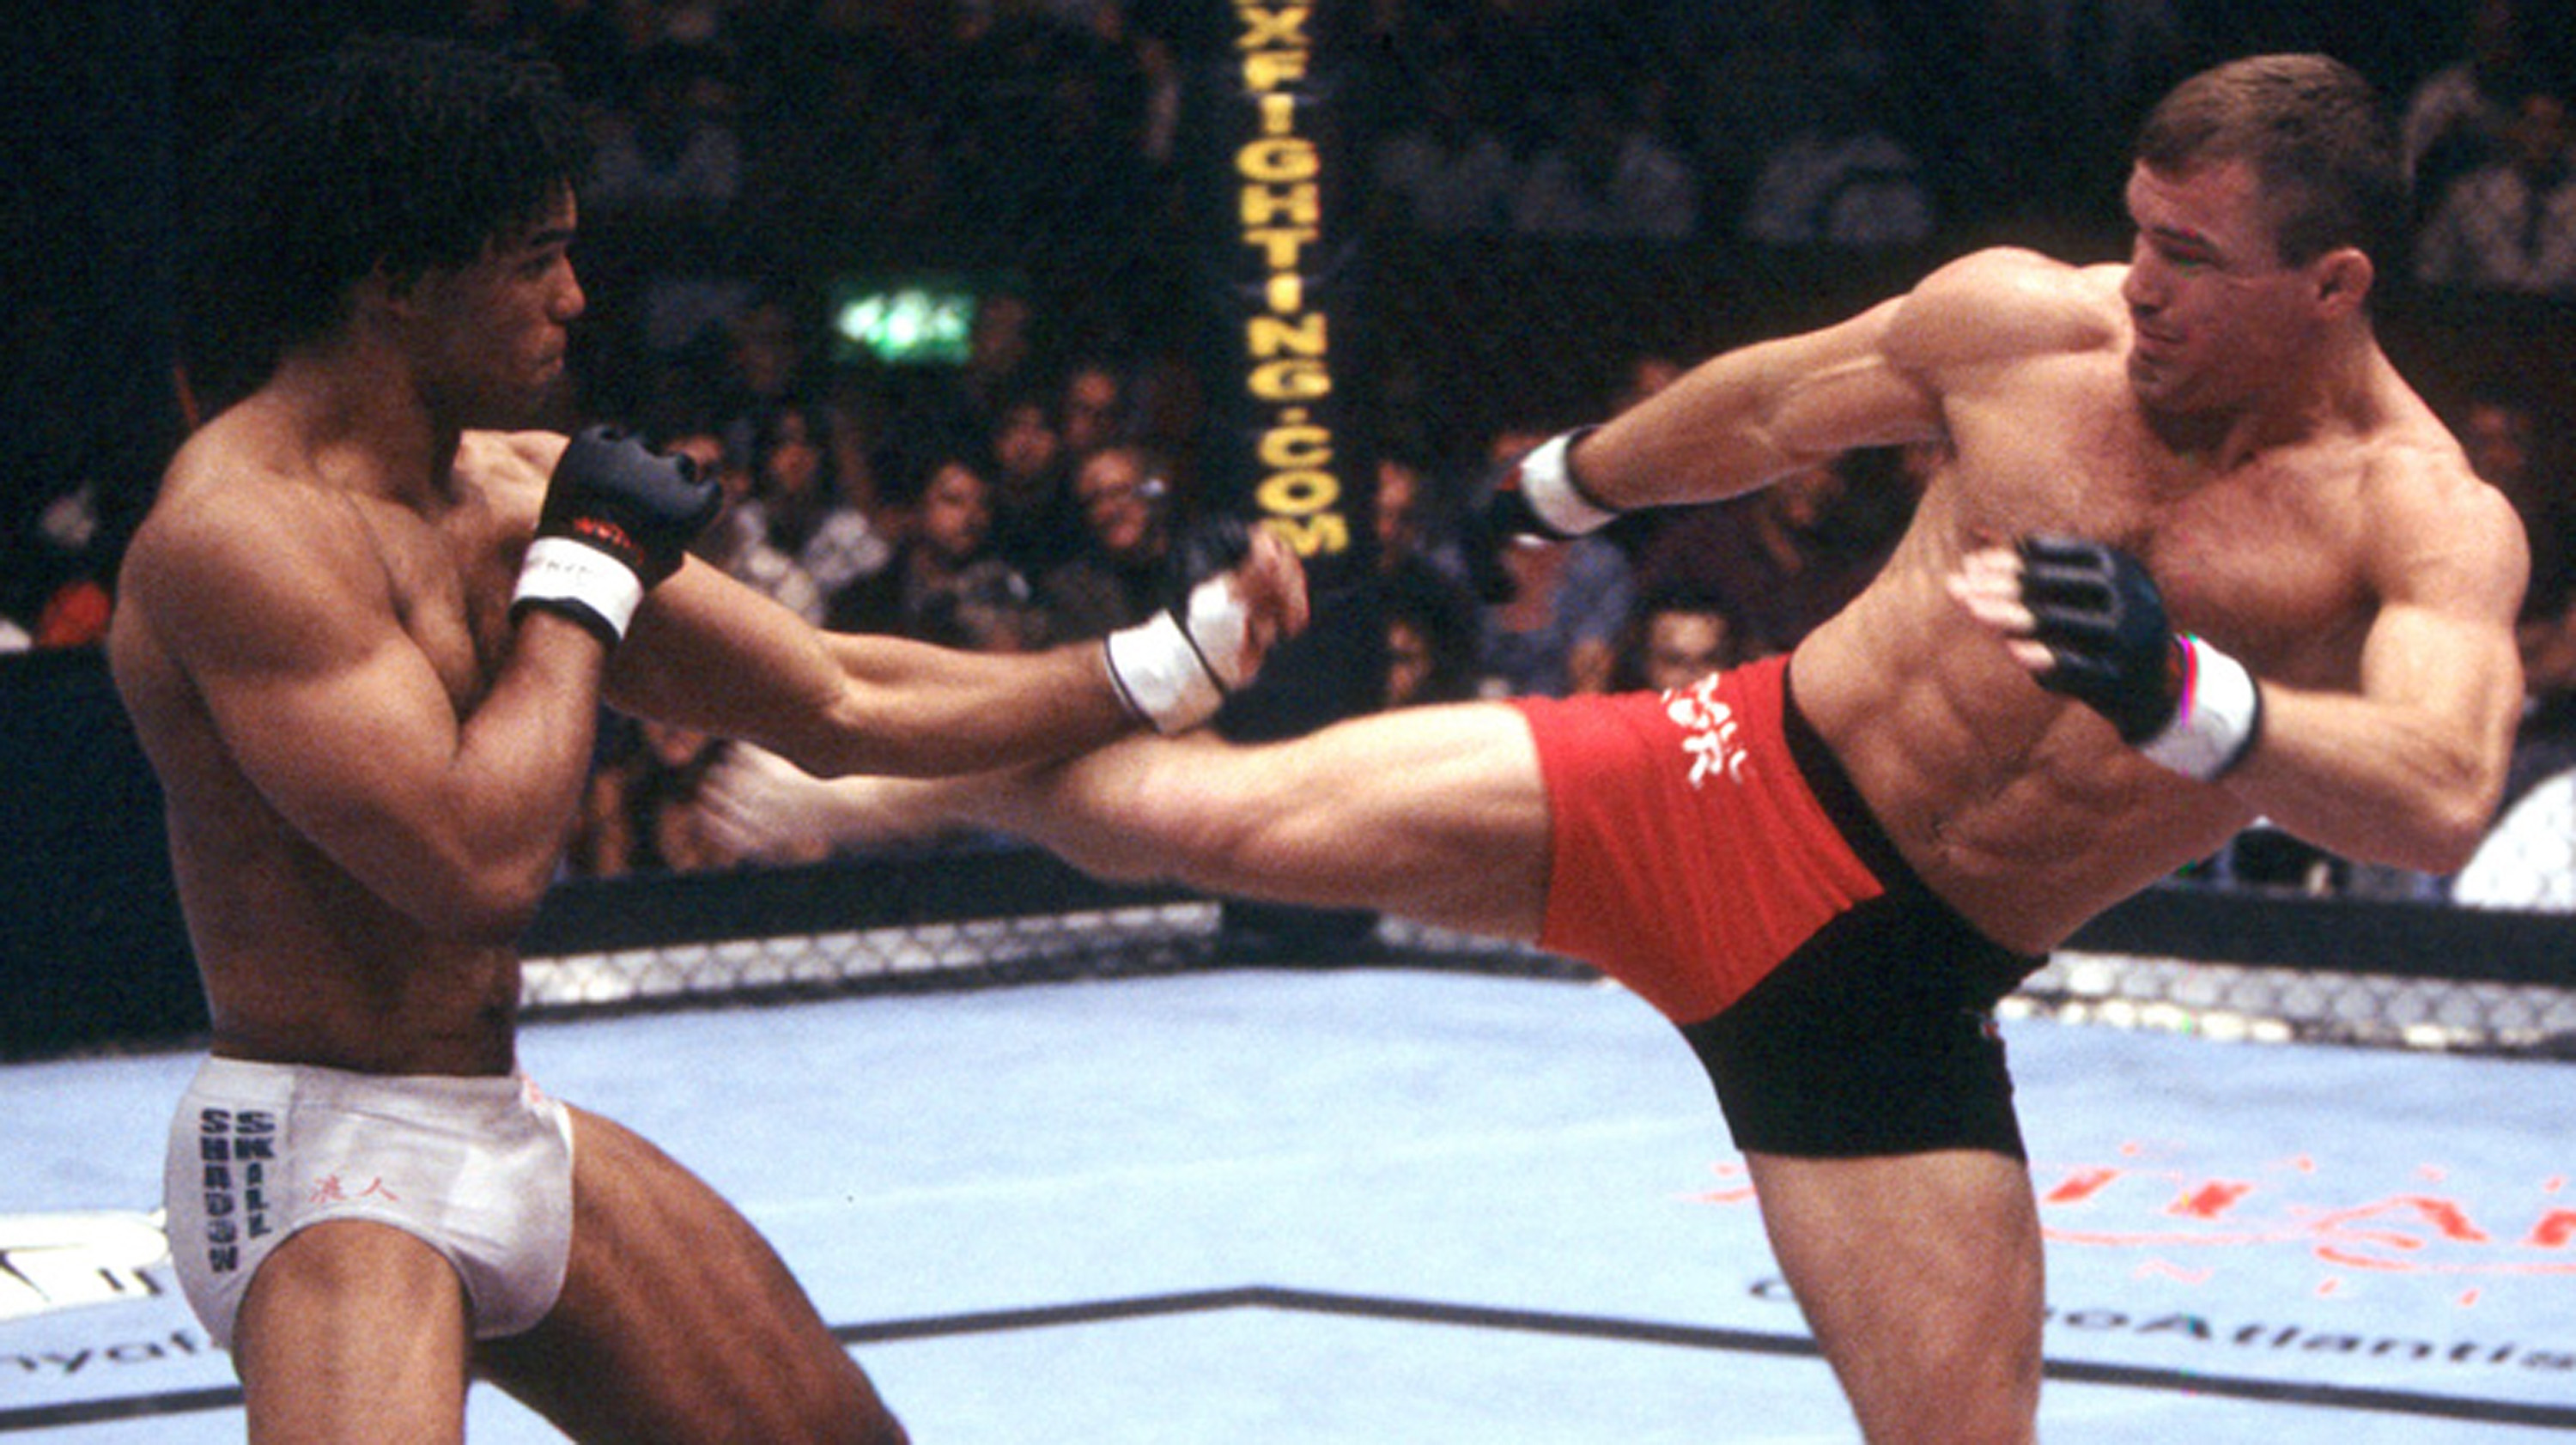 Hughes retired a two-time welterweight champion, defending his crown 7 times successfully (Photo credit: UFC archives)